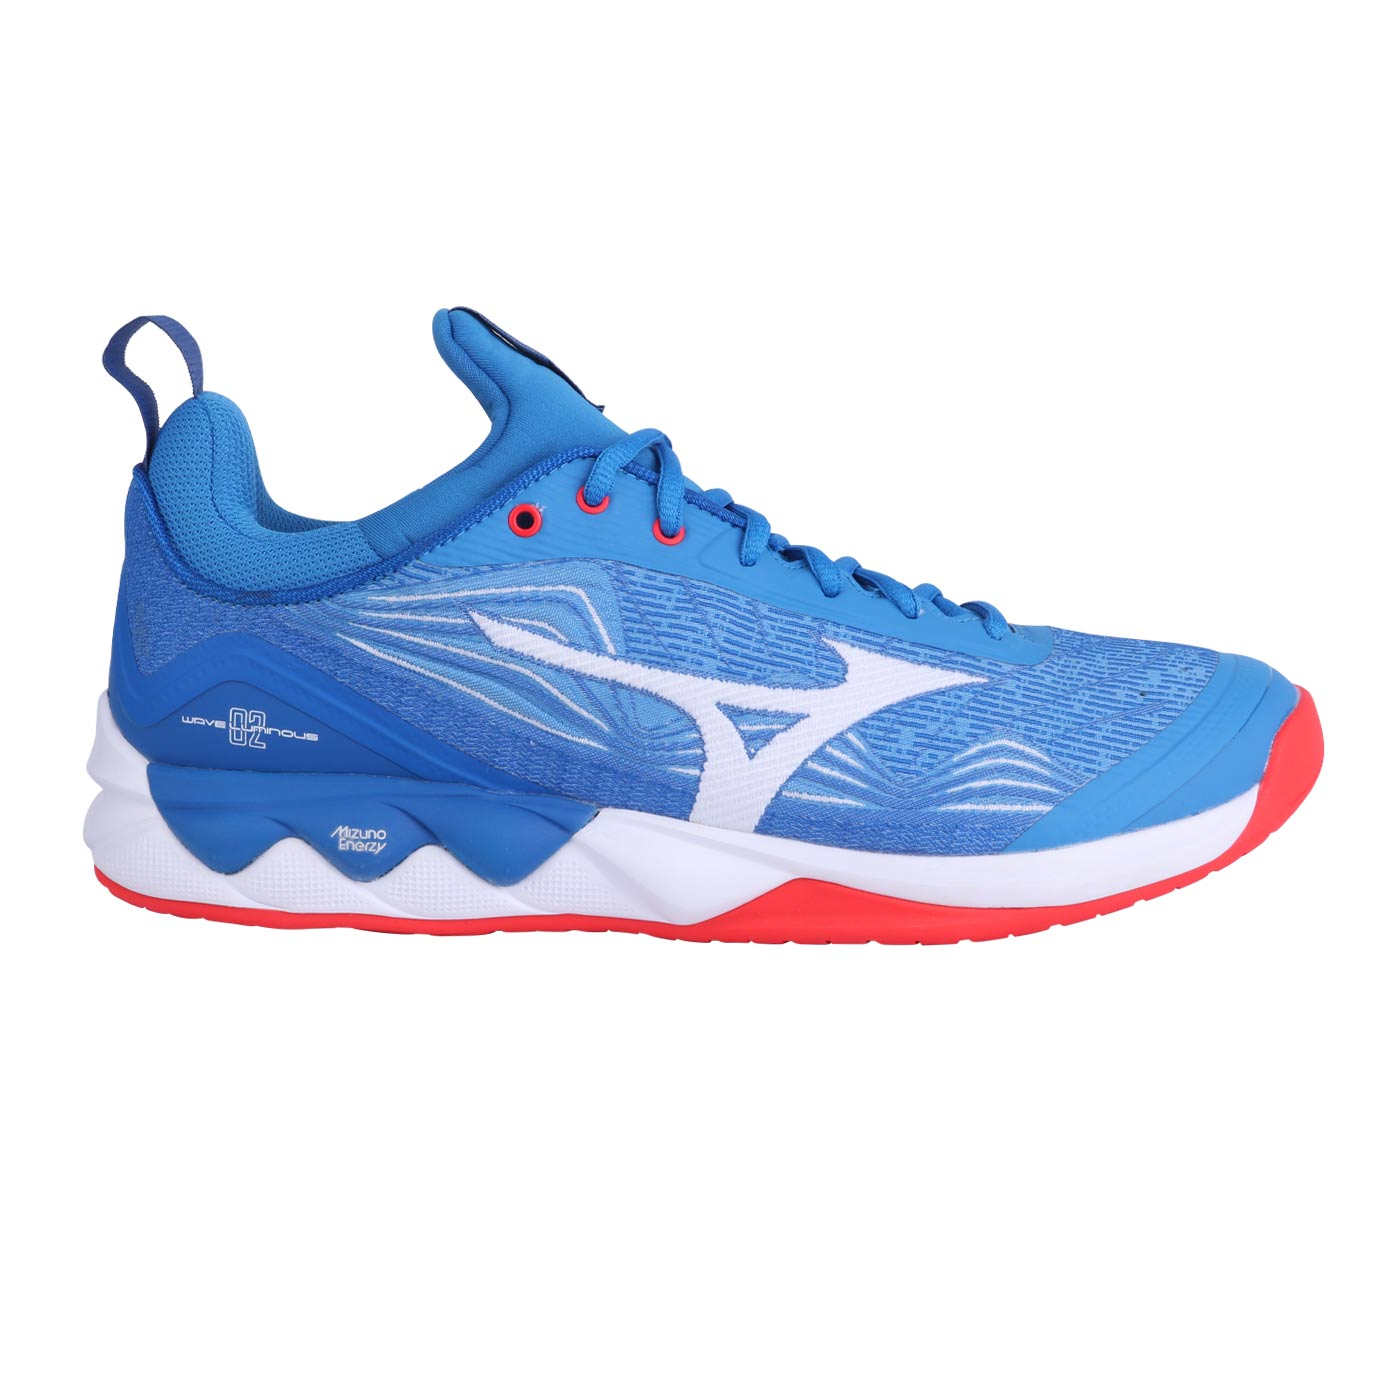 WAVE LUMINOUS 2-FRENCH BLUE/WHITE/IGNITION RED